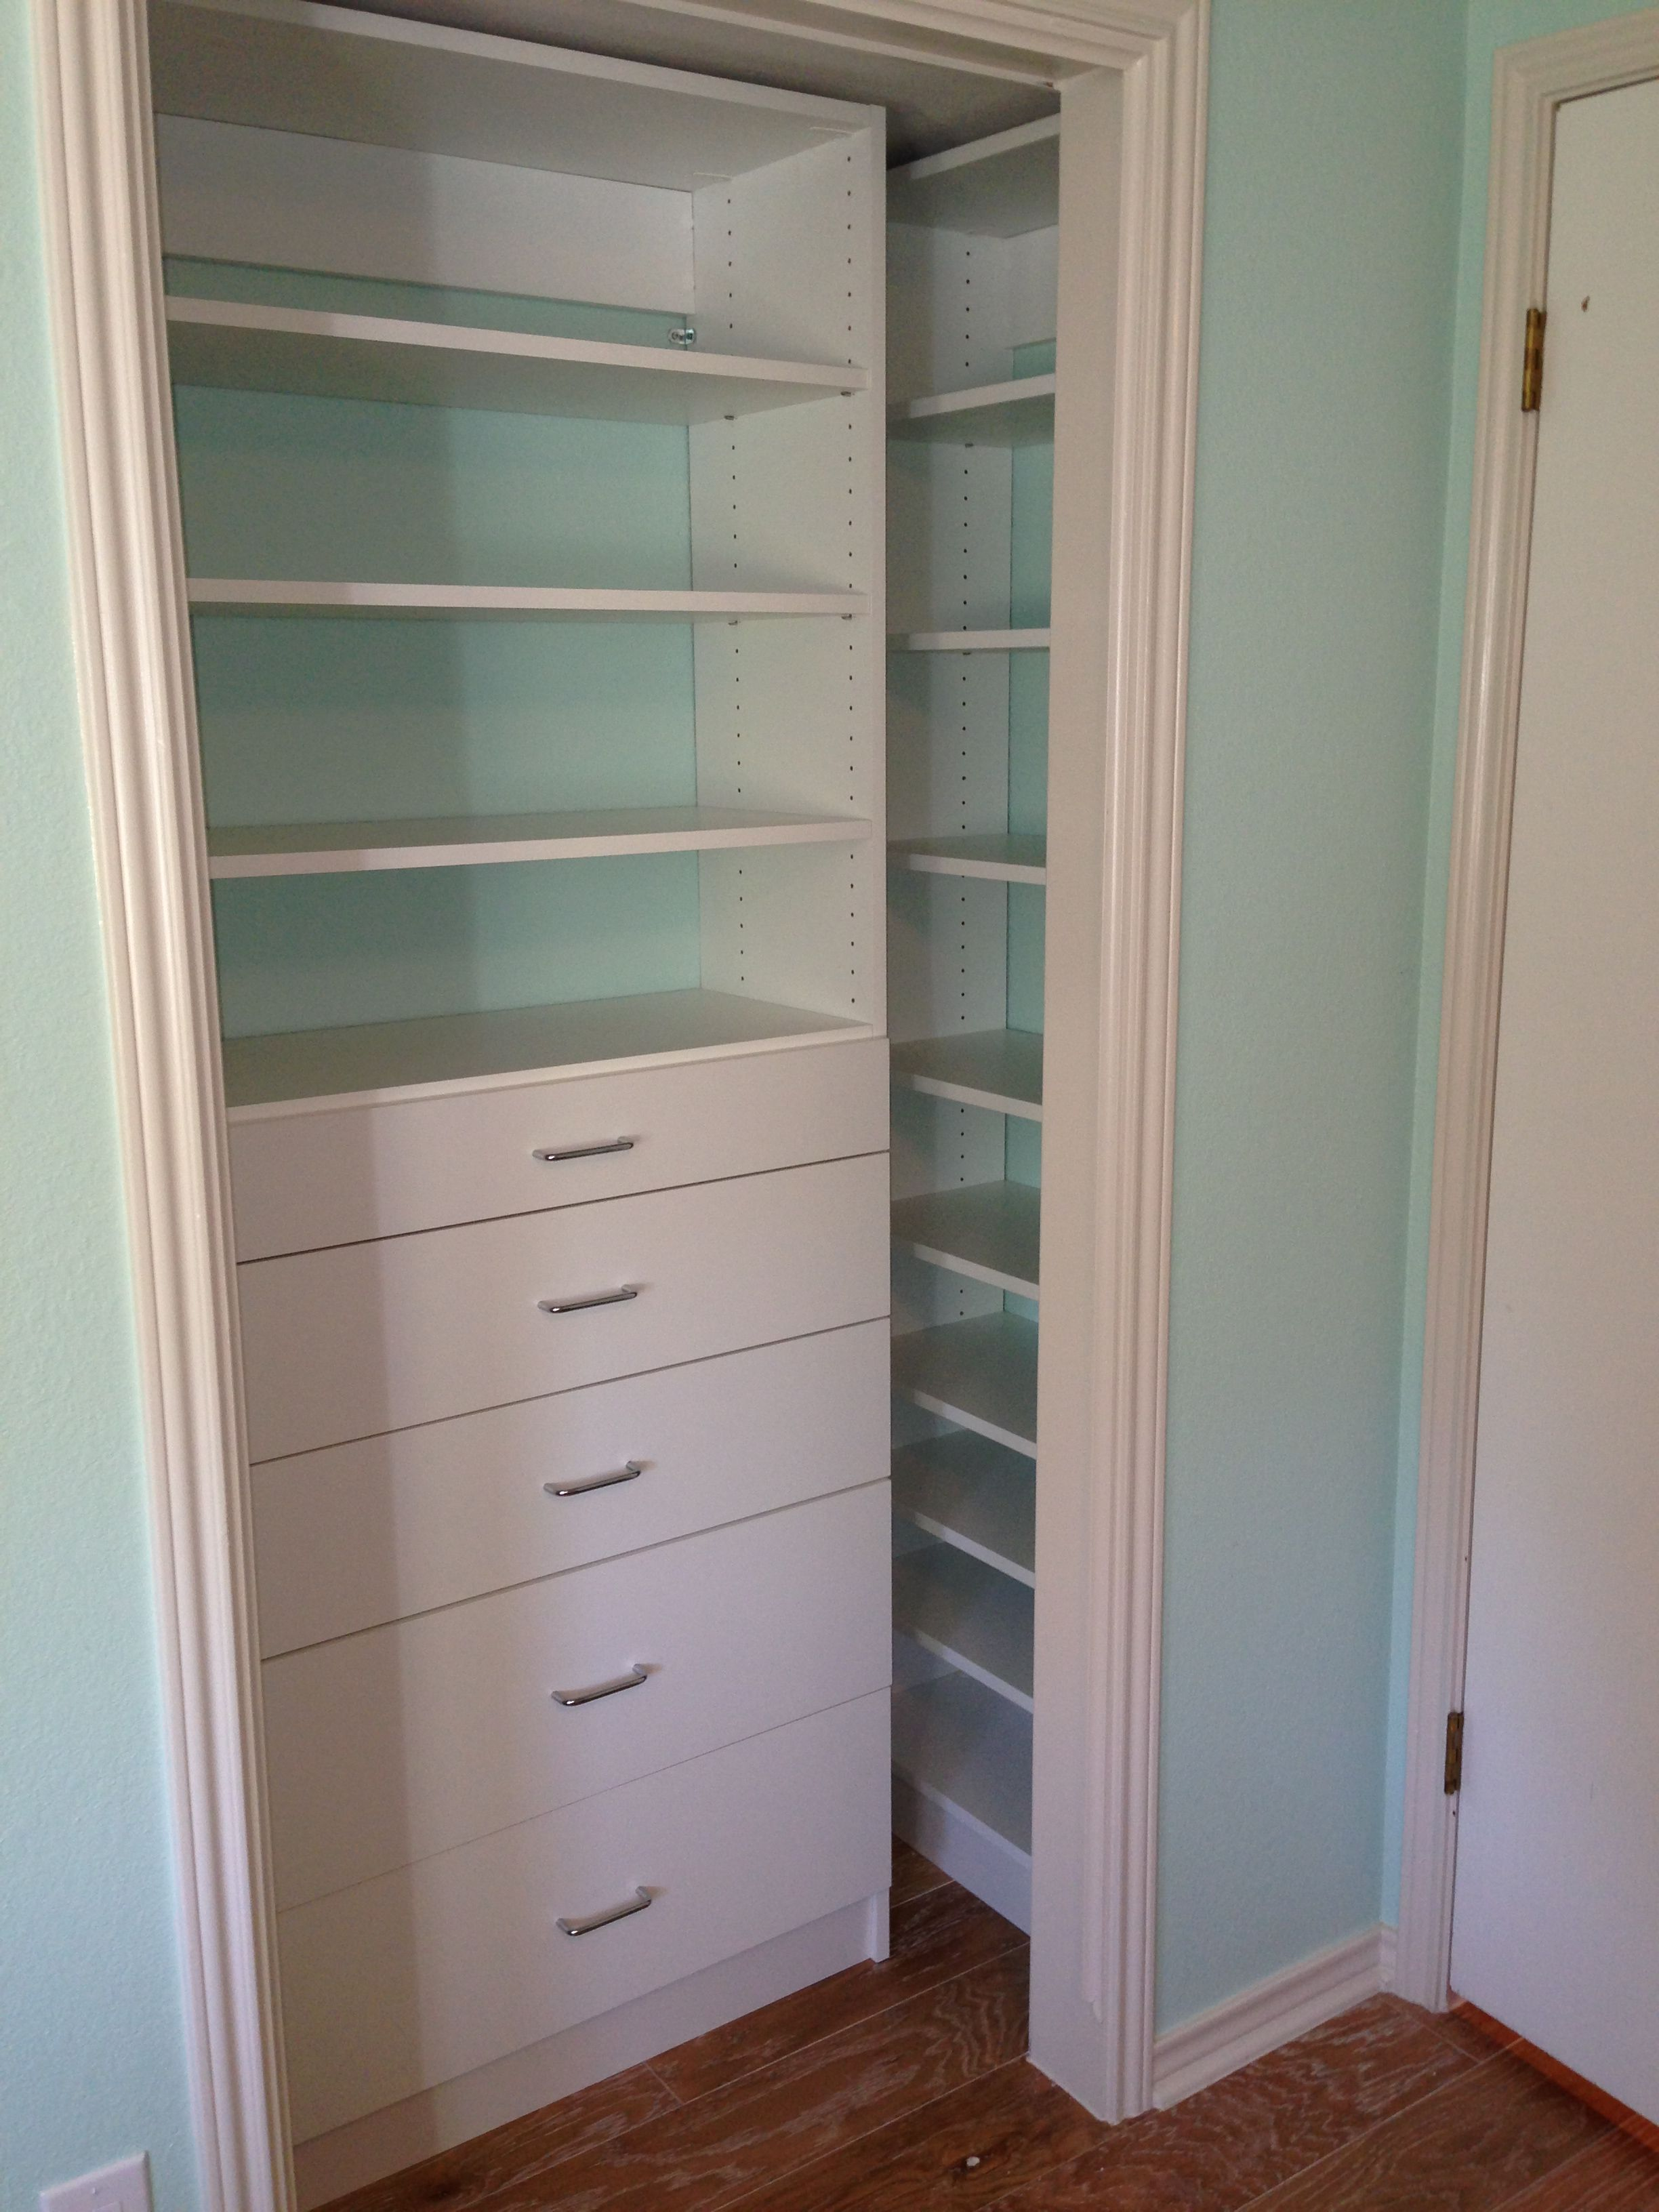 Reach In Closet System With Drawers And Shelves. Wide Drawers Through Door  Opening With Shelving